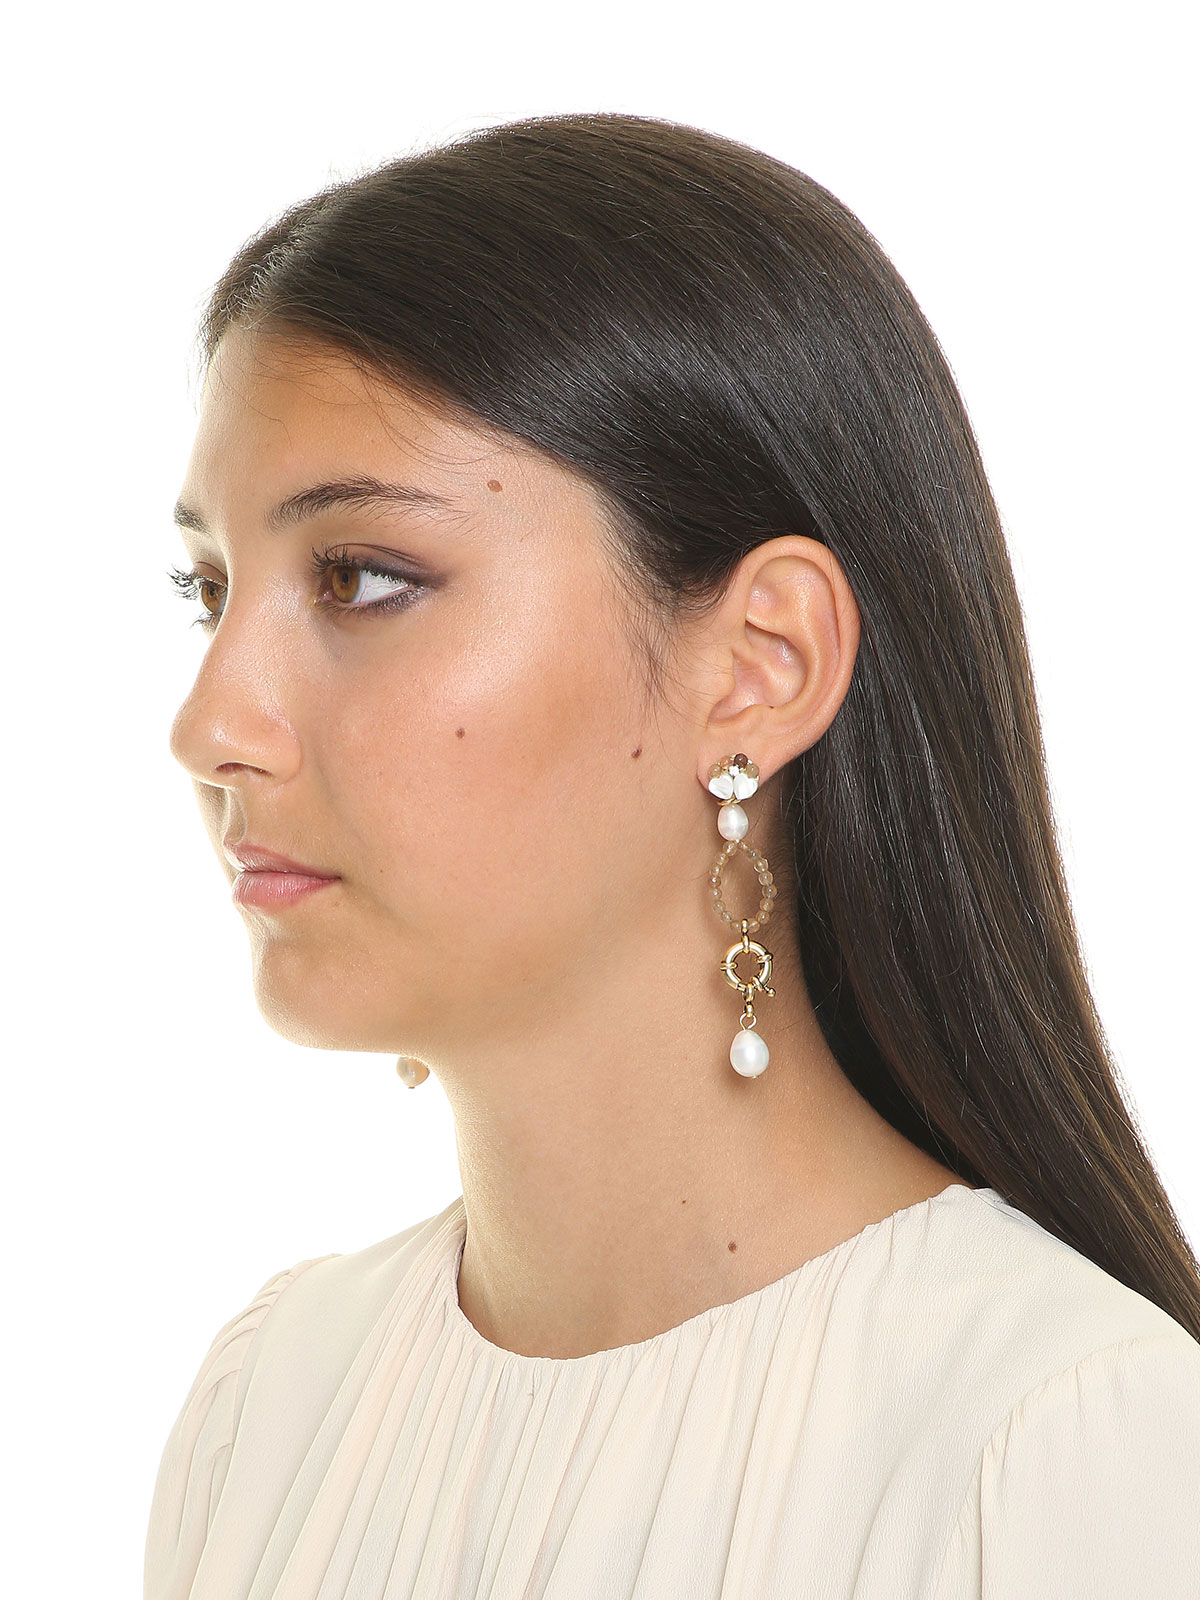 Jade earrings with freshwater pearls